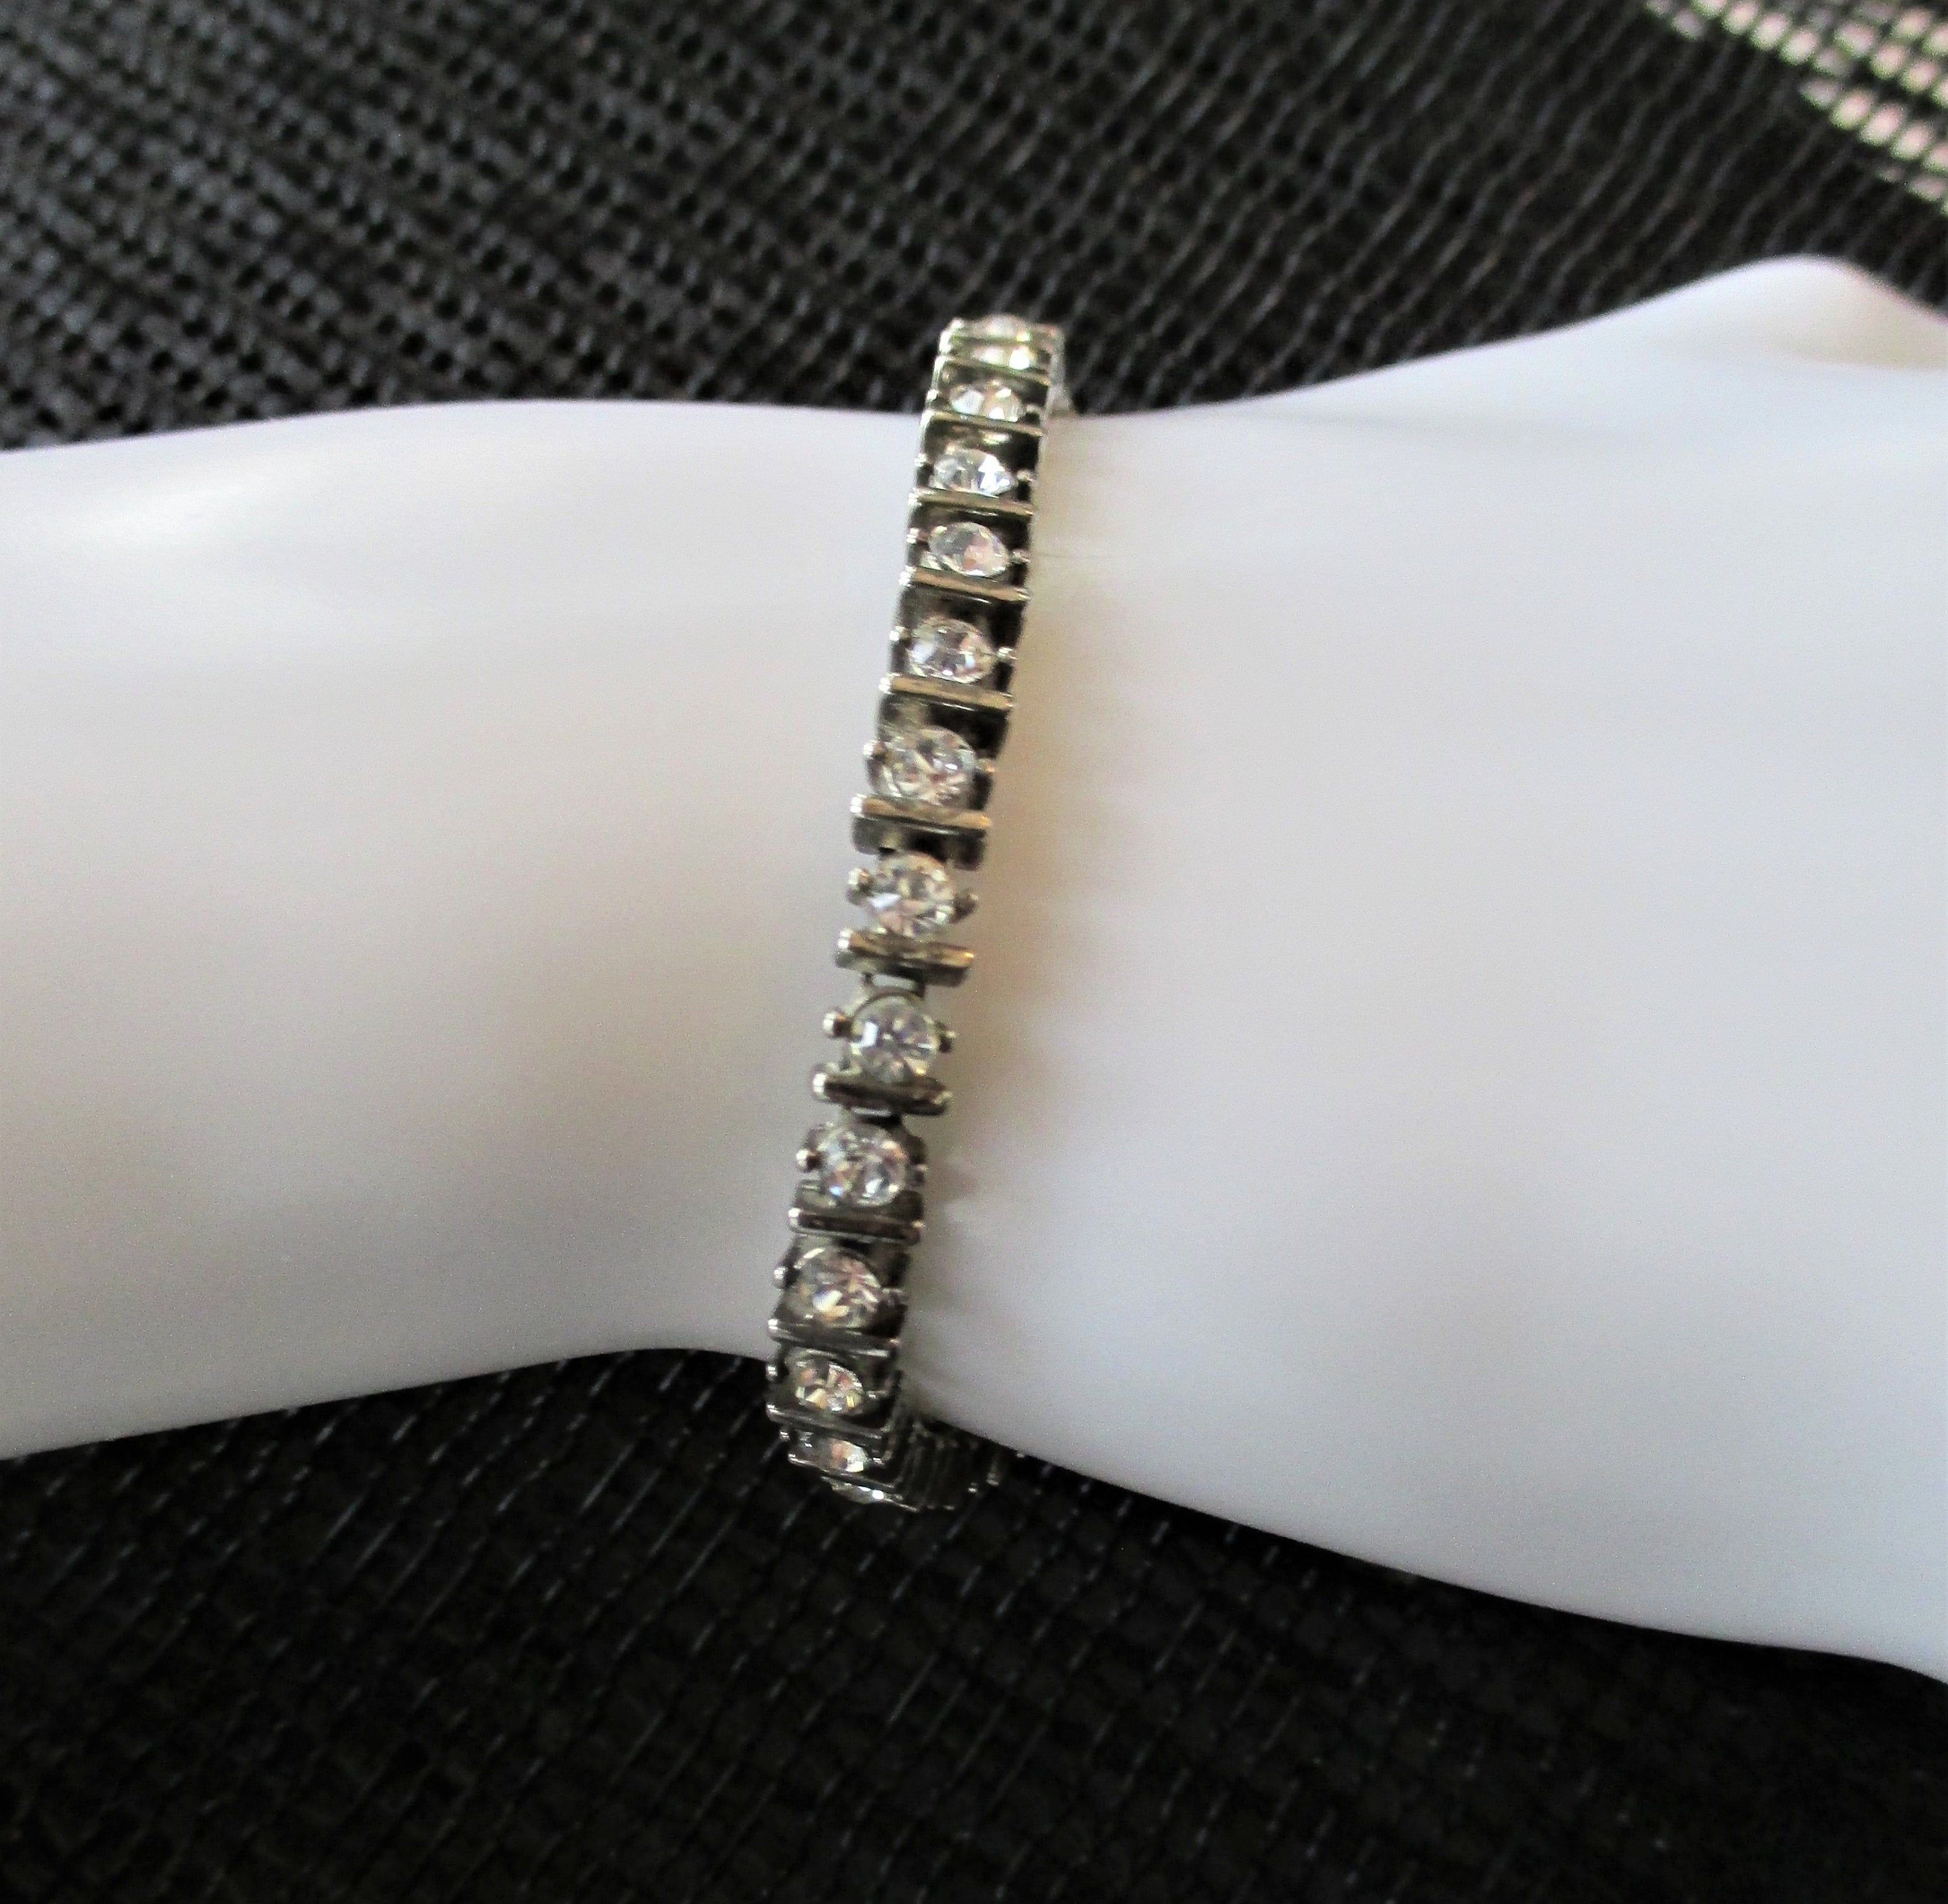 On Sale Collectible Bling Black and  Silver Toned Glass Bead 7 inch Toggle Clasp Bracelet Costume Jewelry Fashion Accessory